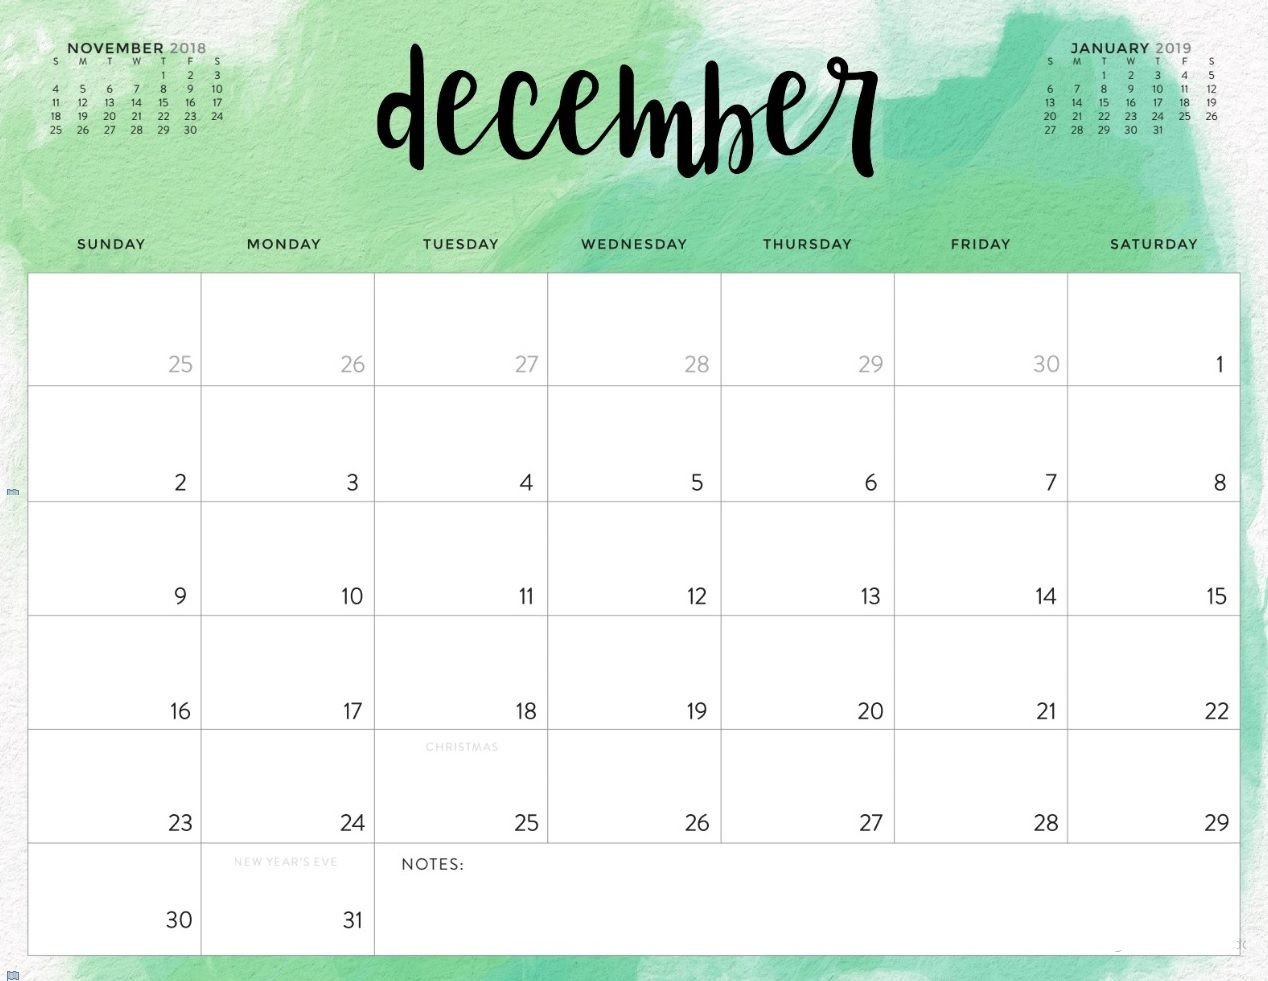 Custom Calendar For Business - Marry Steven - Medium A Calendar That I Can Edit